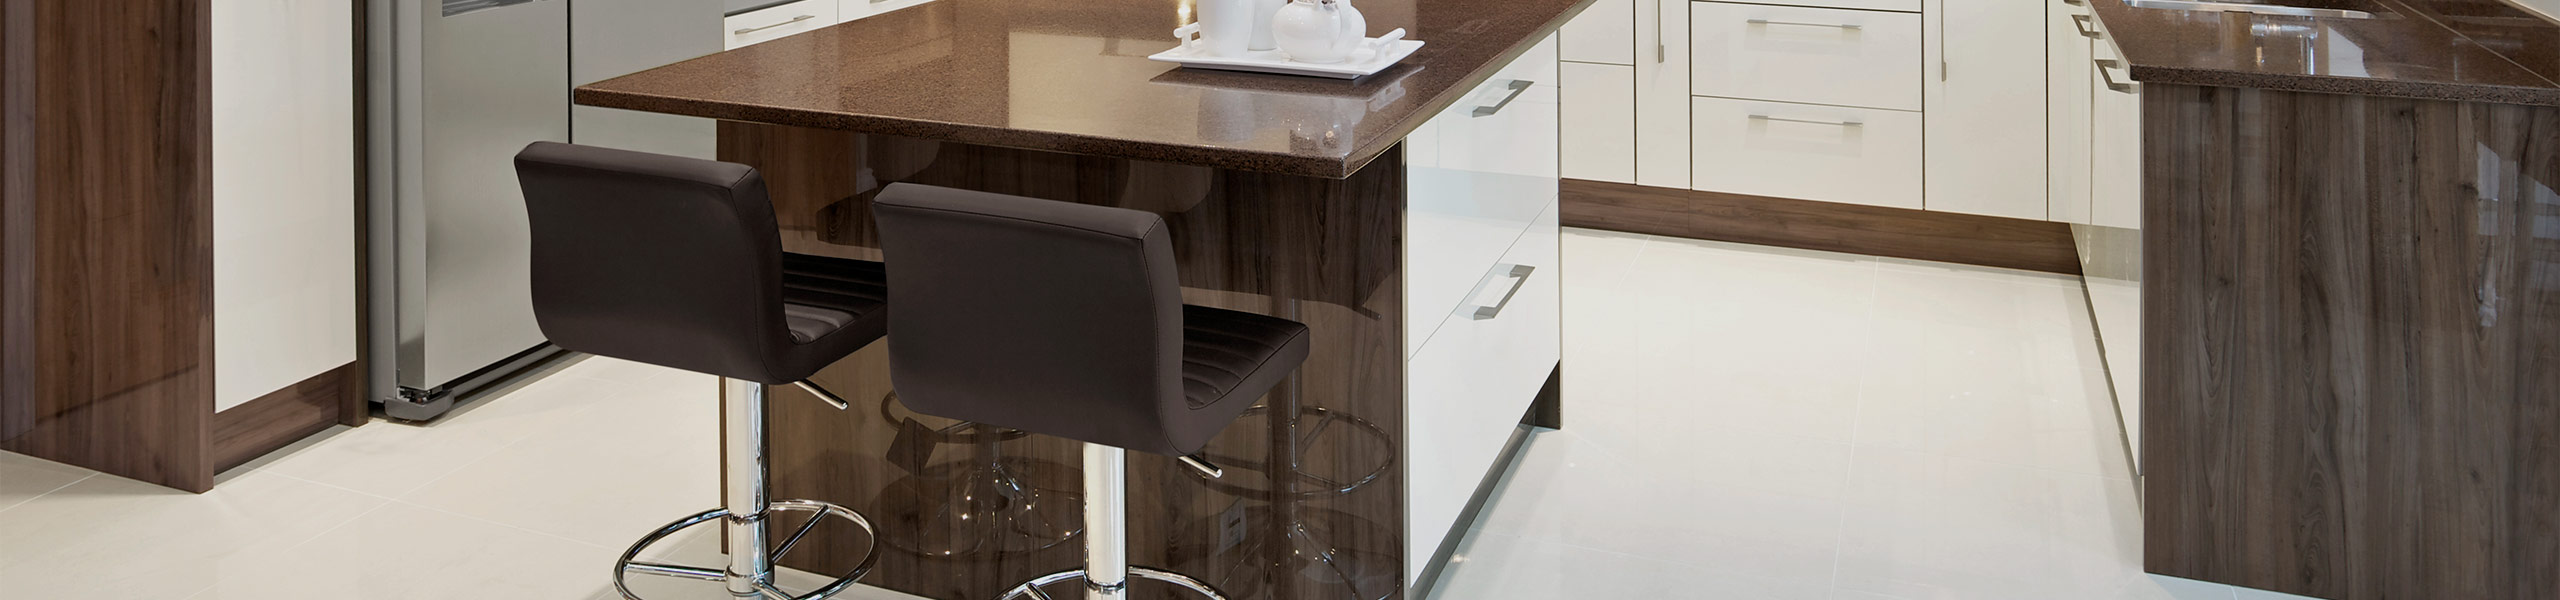 Mint Bar Stool Brown Video Banner